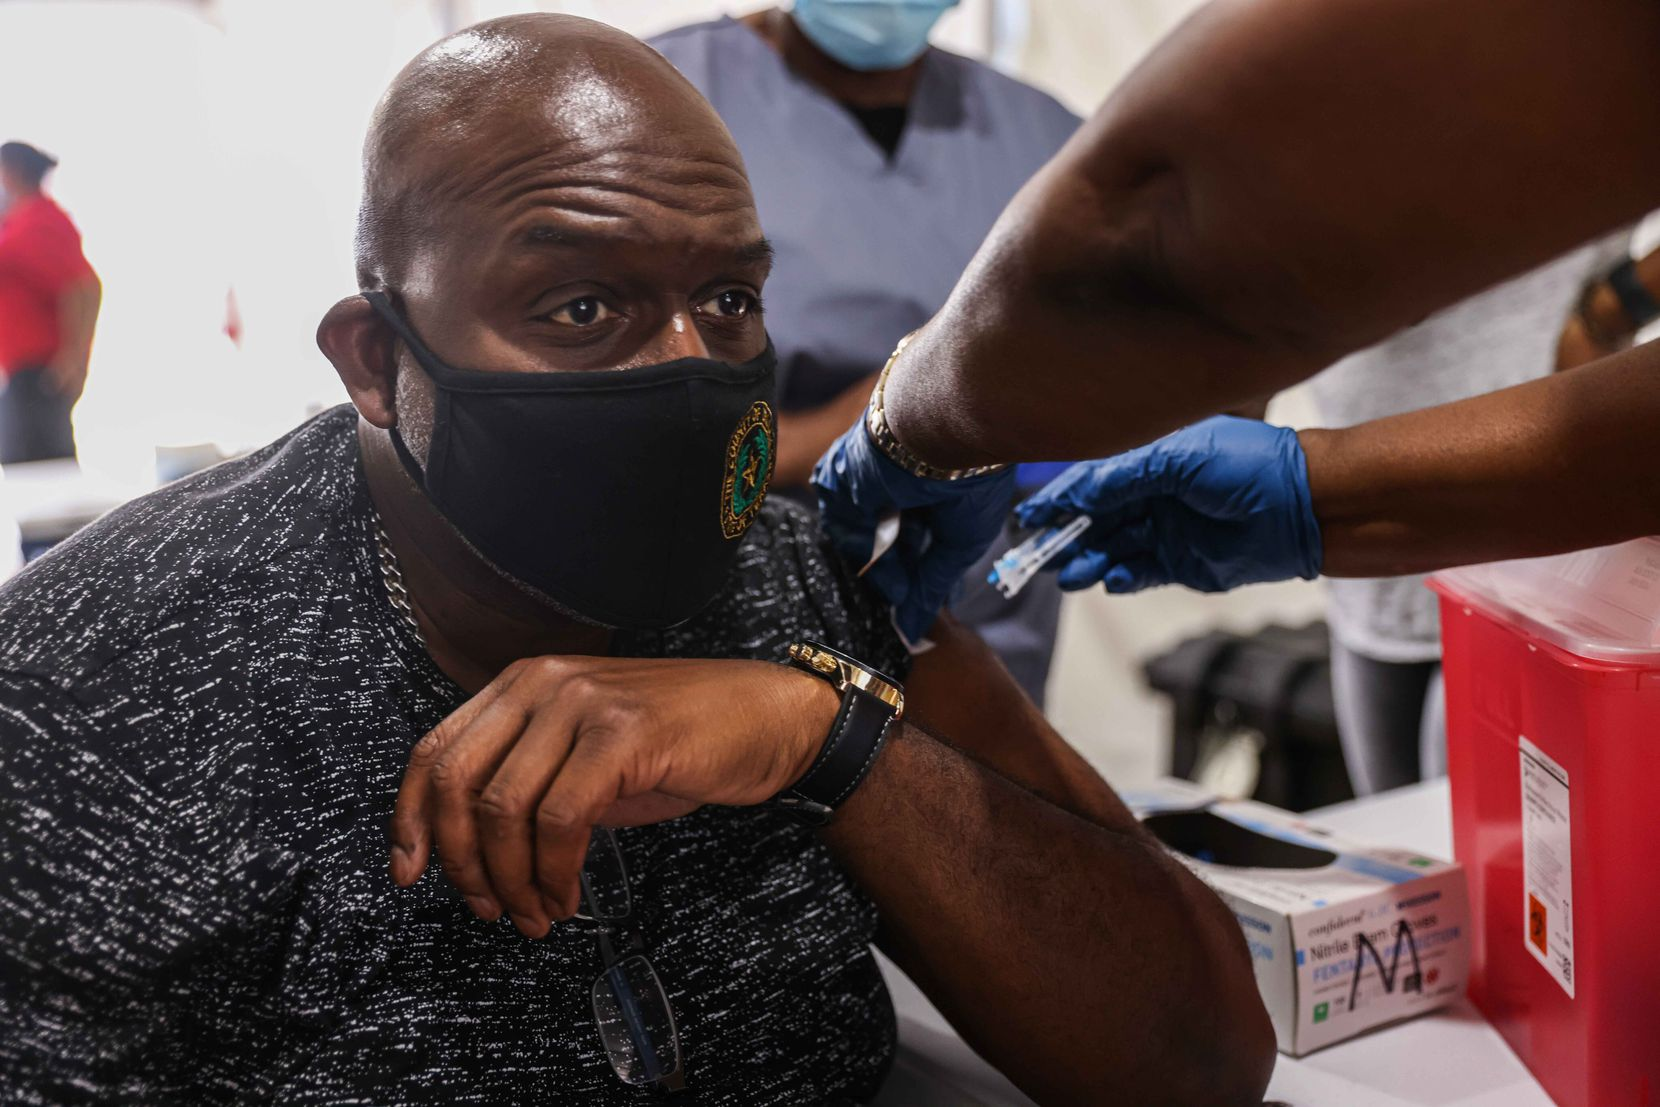 David Penelton, 53, gets a booster COVID-19 shot offered by the Dallas County at the State Fair of Texas during its opening day in Dallas on Friday, September 24, 2021.